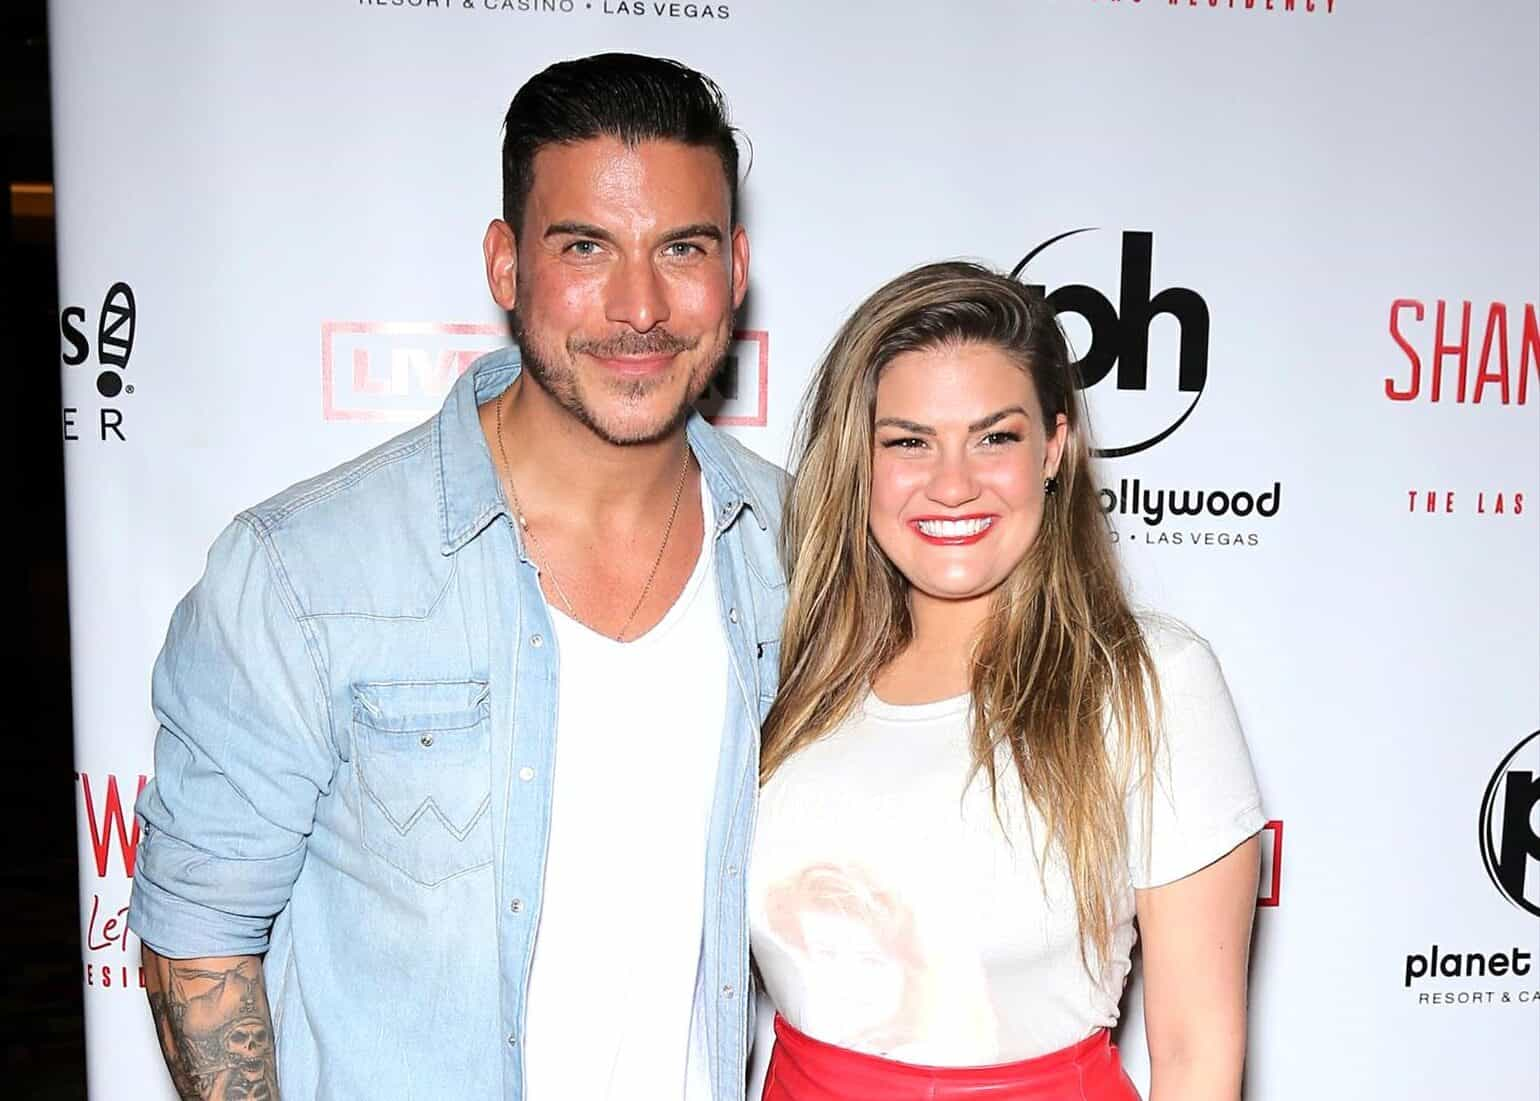 PHOTO: Jax Taylor Shares Pic of Extravagant Push Present He Got Wife Brittany Cartwright, Find Out How Much Vanderpump Rules Alum is Charging For Cameos Amid $1.2 Million Tax Debt